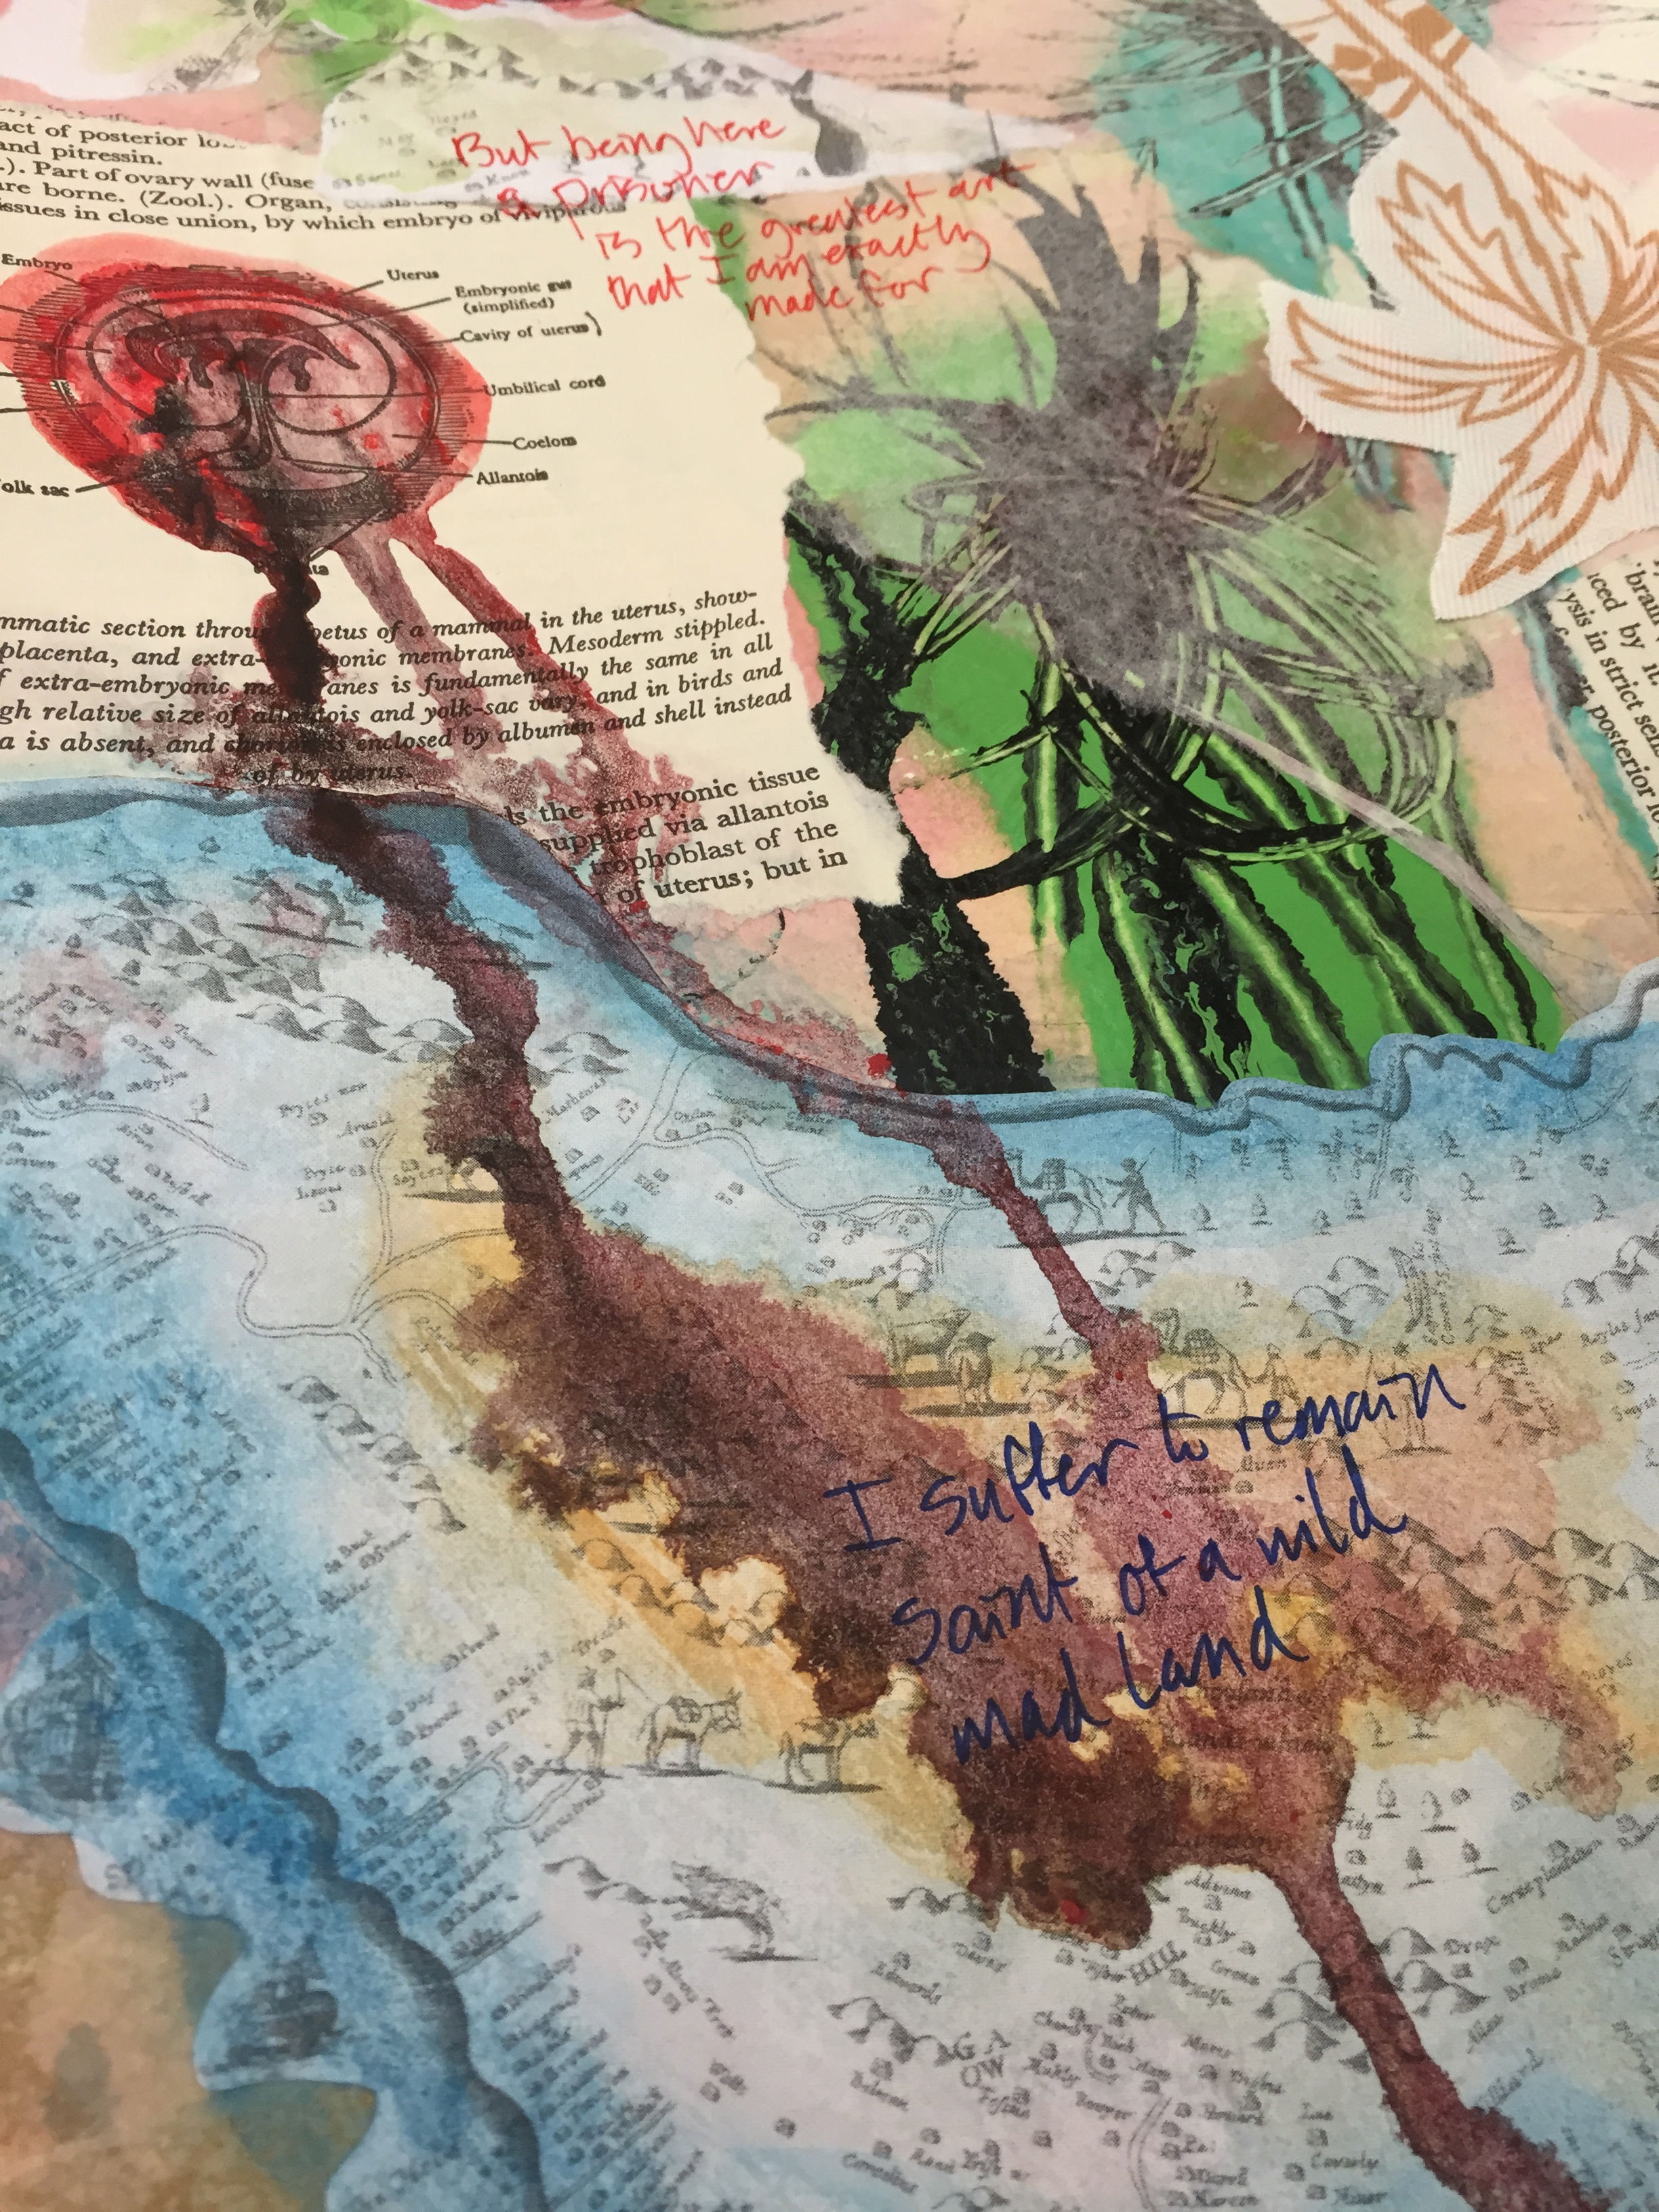 The art of the Book – fresh milk barbados Map Ysis Worksheet on map english, map key for first grade, map grid activity, map scale for 3rd grade, map forms, map handouts, map puzzles, map powerpoint, map scaling, map math, map ideas, map games, map paper, map of volcanic eruptions around the world, map answers, map vocabulary, map assessment, map of the five regions of georgia, map skills, map activity for students,